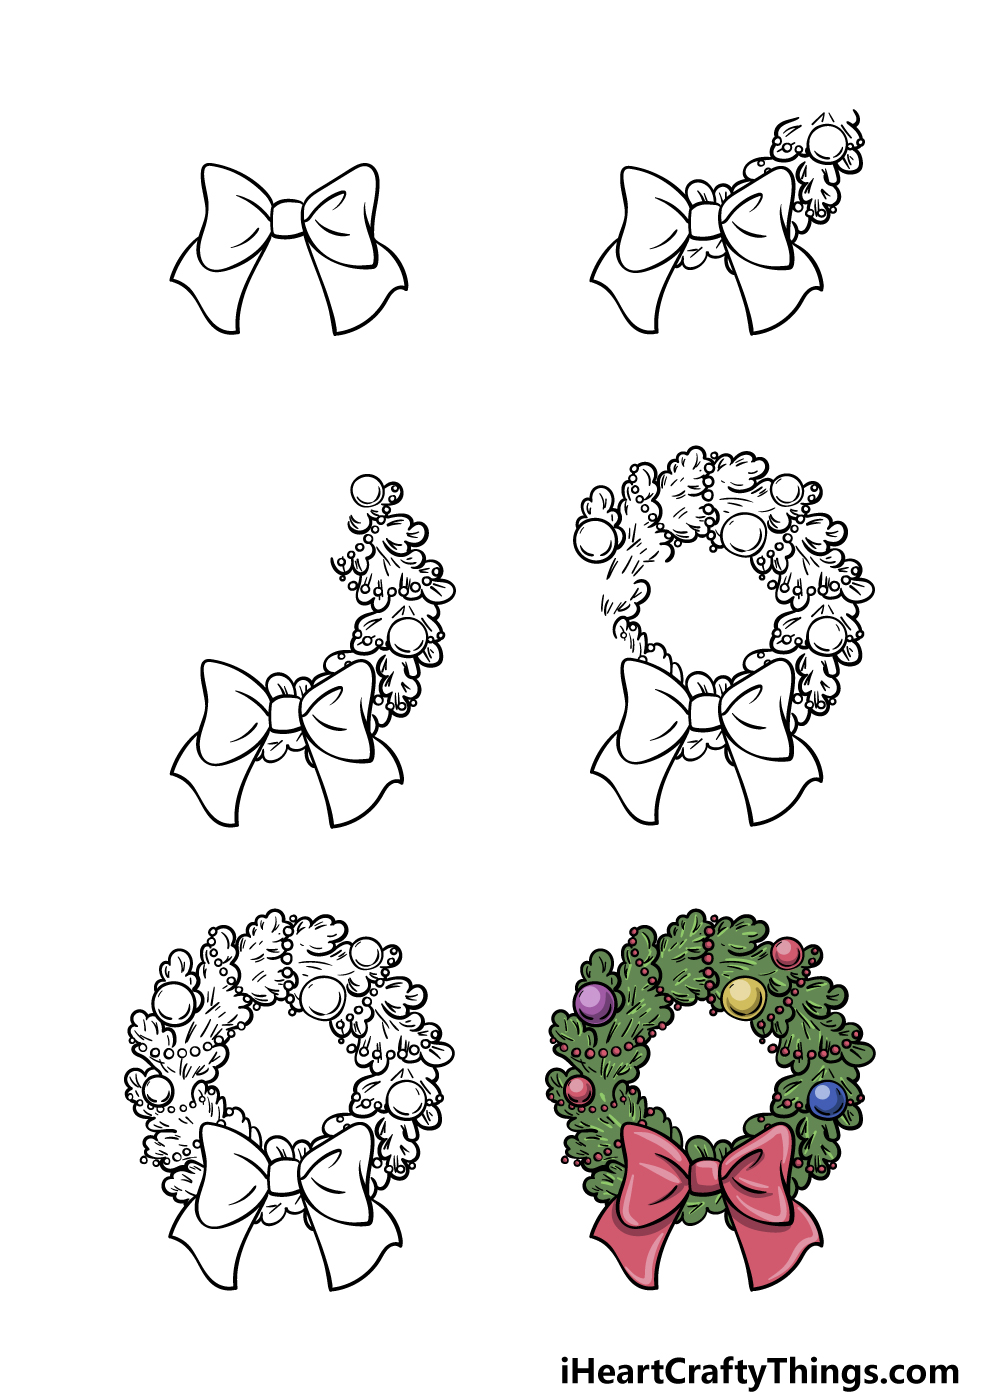 how to draw a wreath in 6 steps